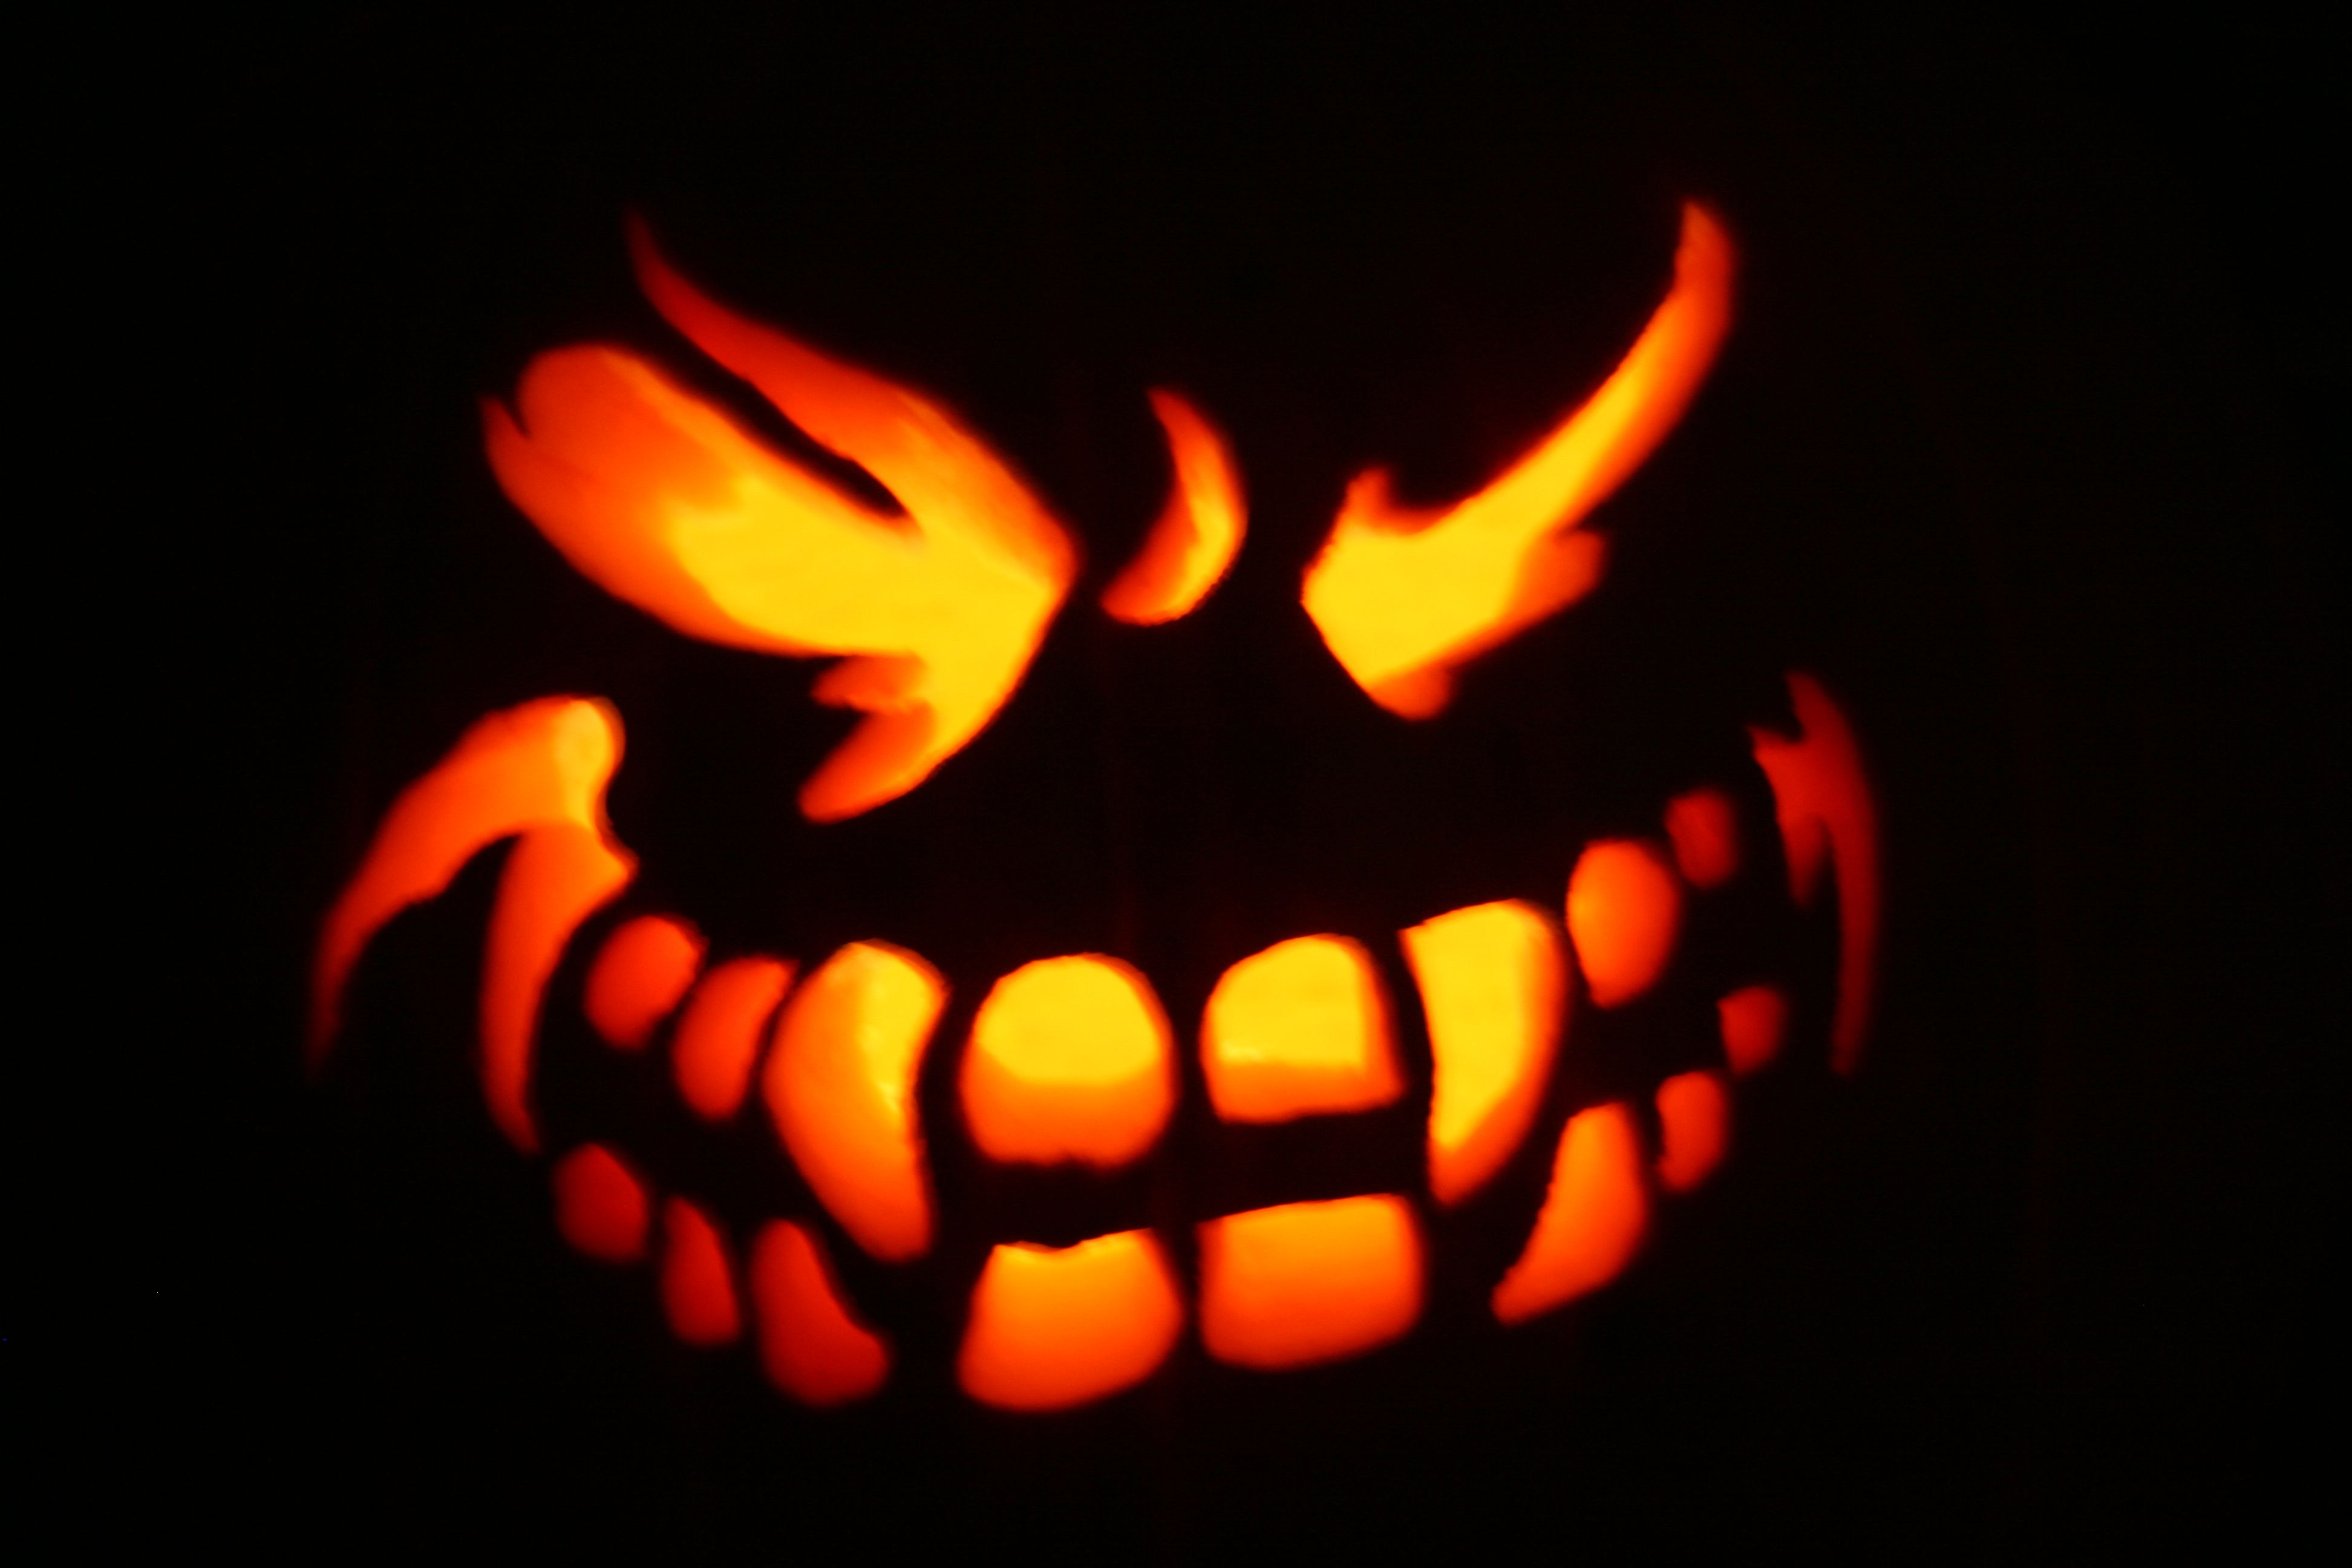 This is the picture I wanted to carve in my pumpking but it seemed too difficult.